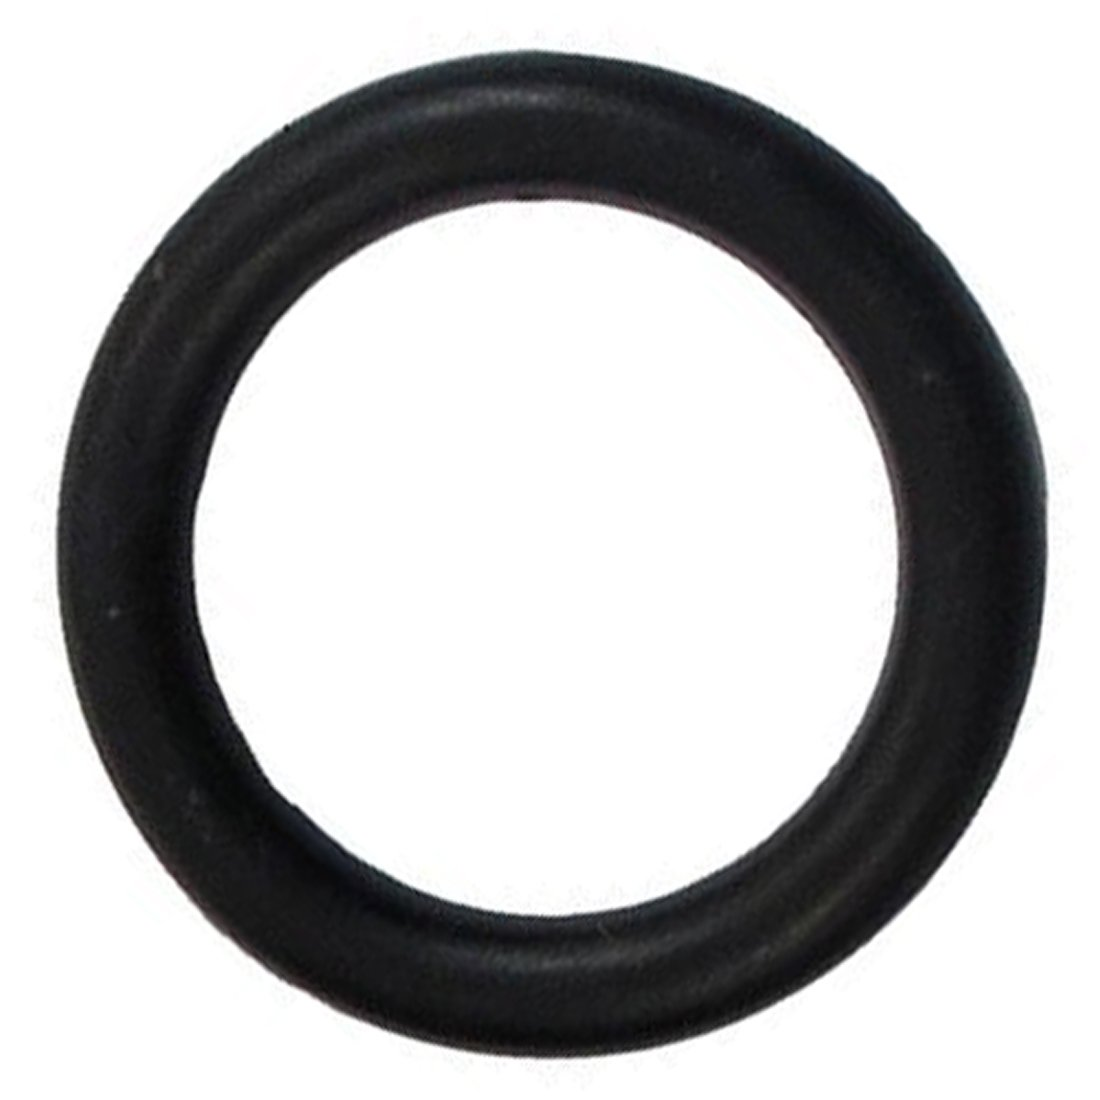 TOOGOO 5 pieces 35mm x 5mm rubber O ring oil seal sealing washer black